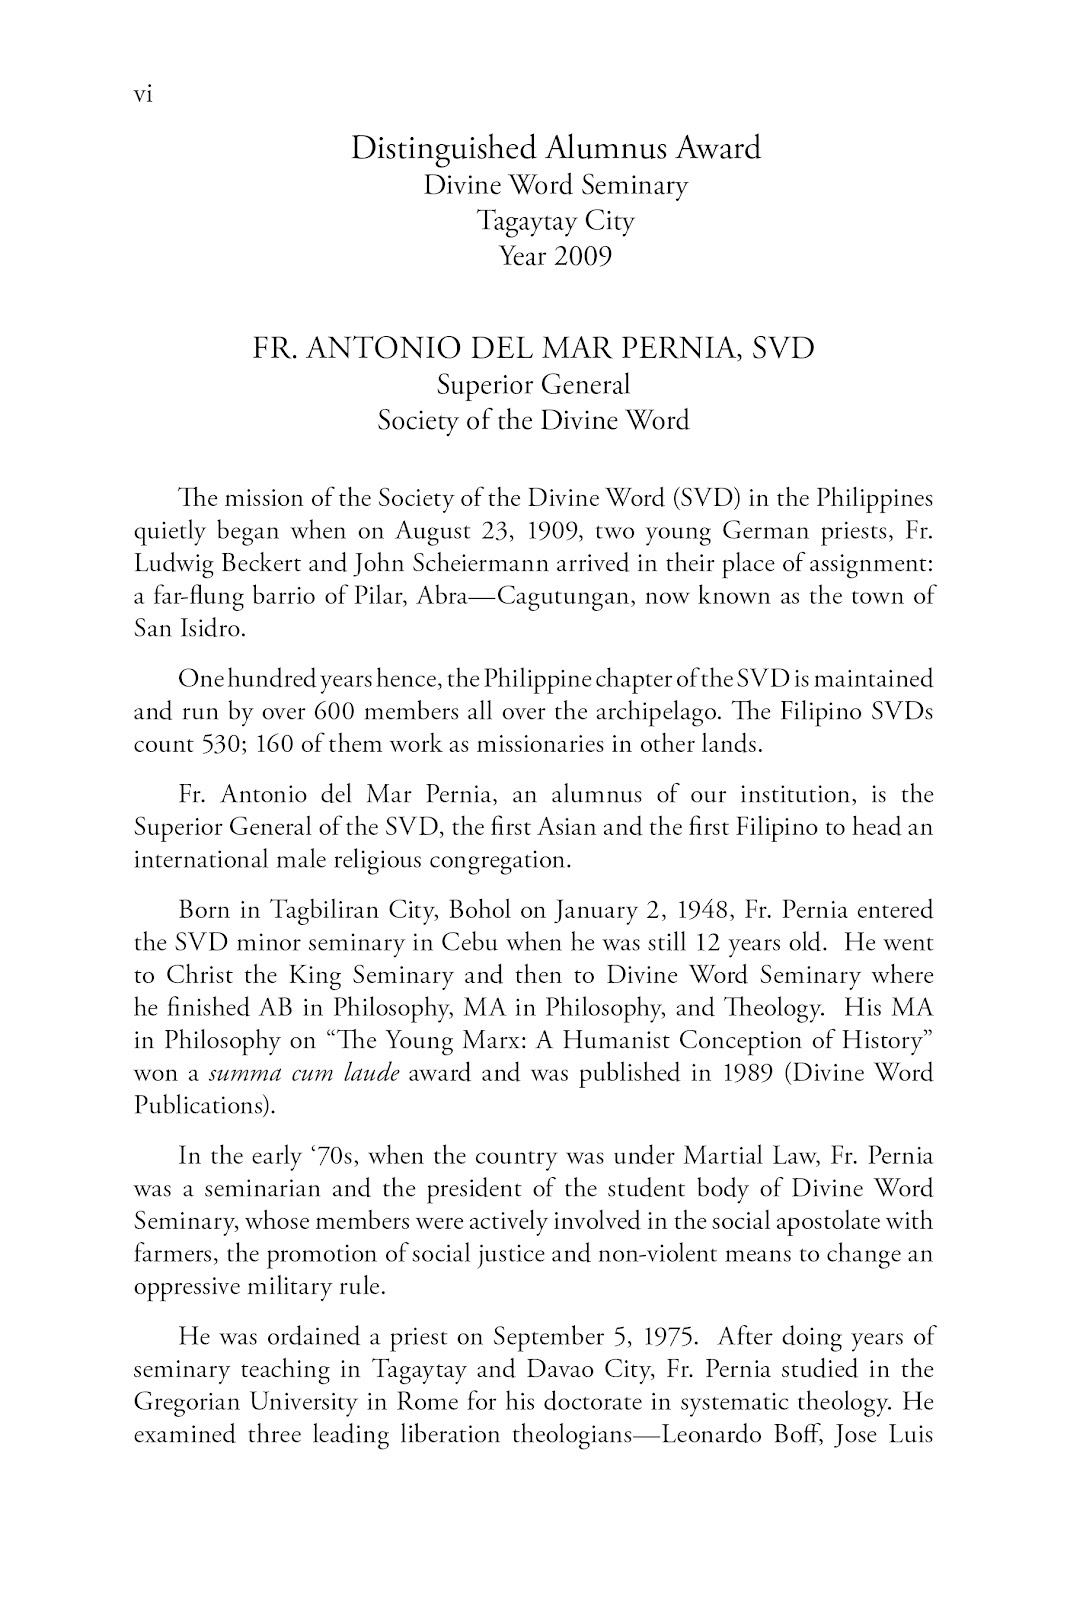 diwa studies in philosophy and theology diwa 35 is special issue dedicated to the 100 years of the philippine svd